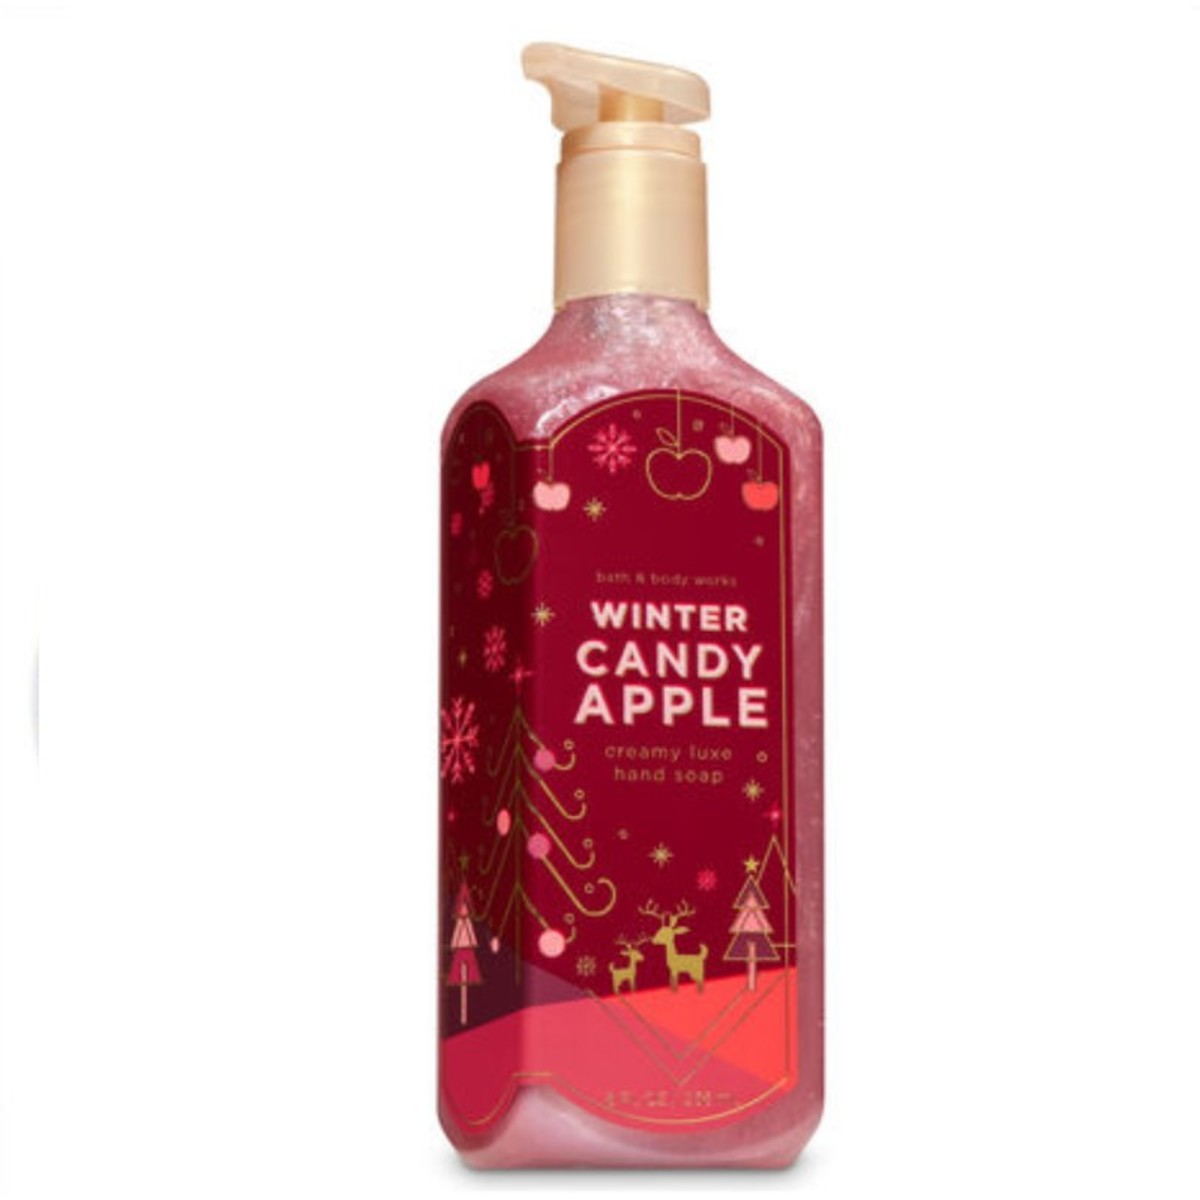 WINTER CANDY APPLE Creamy Luxe HandSoap (Parallel Imports Product)